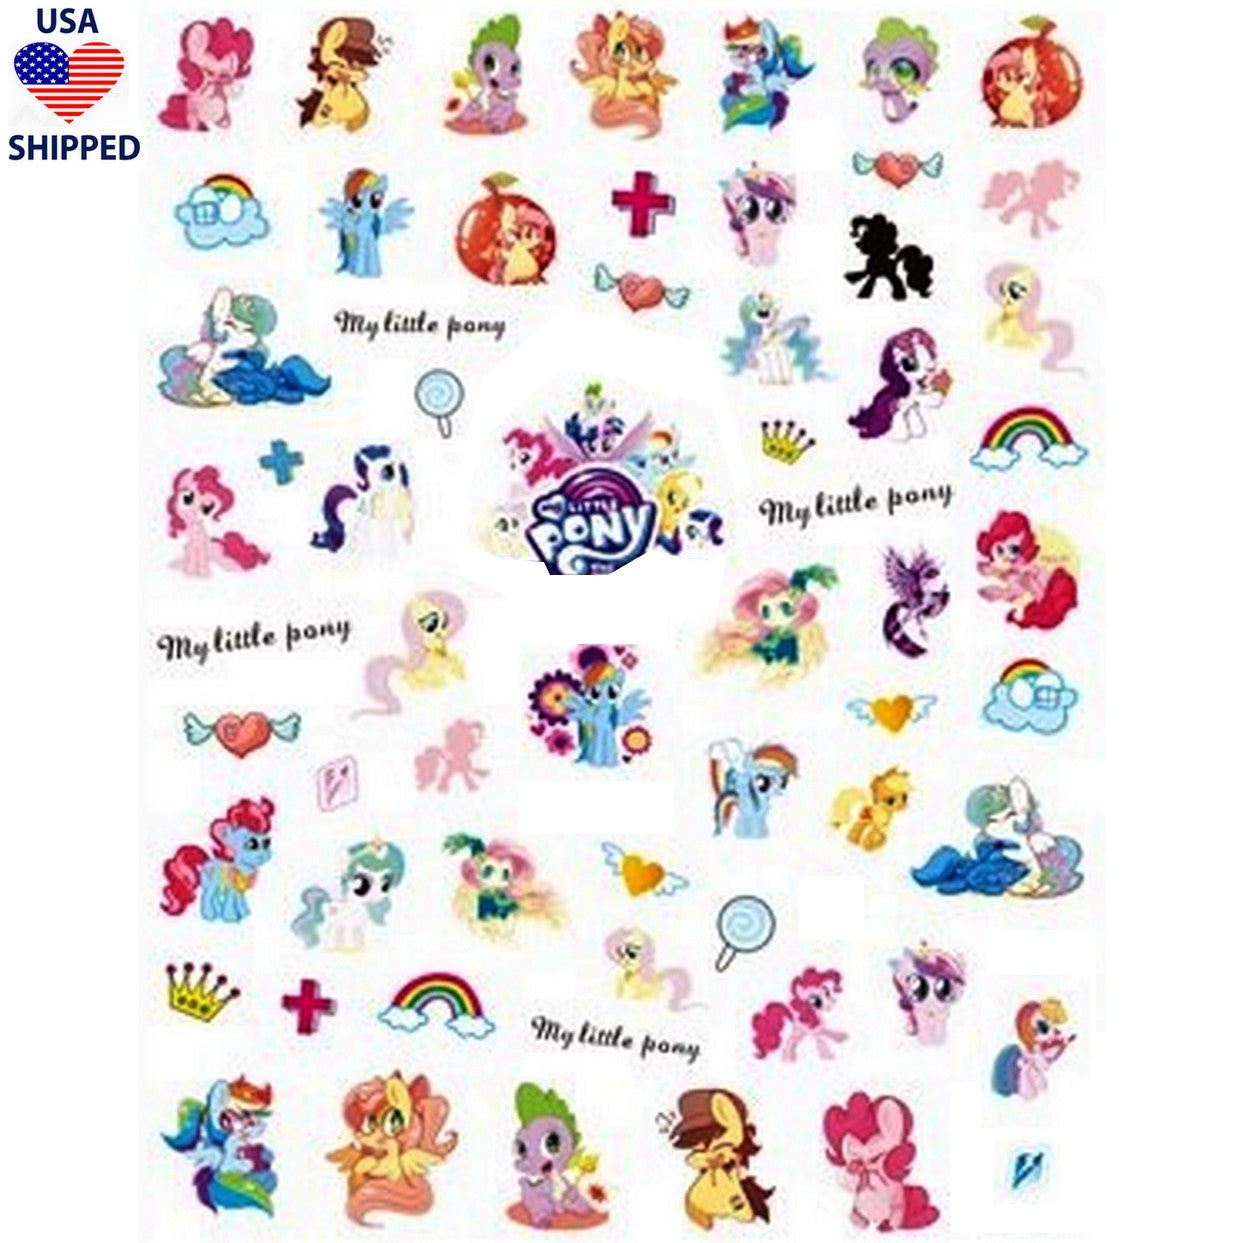 Nostalgic Pony Nail Stickers